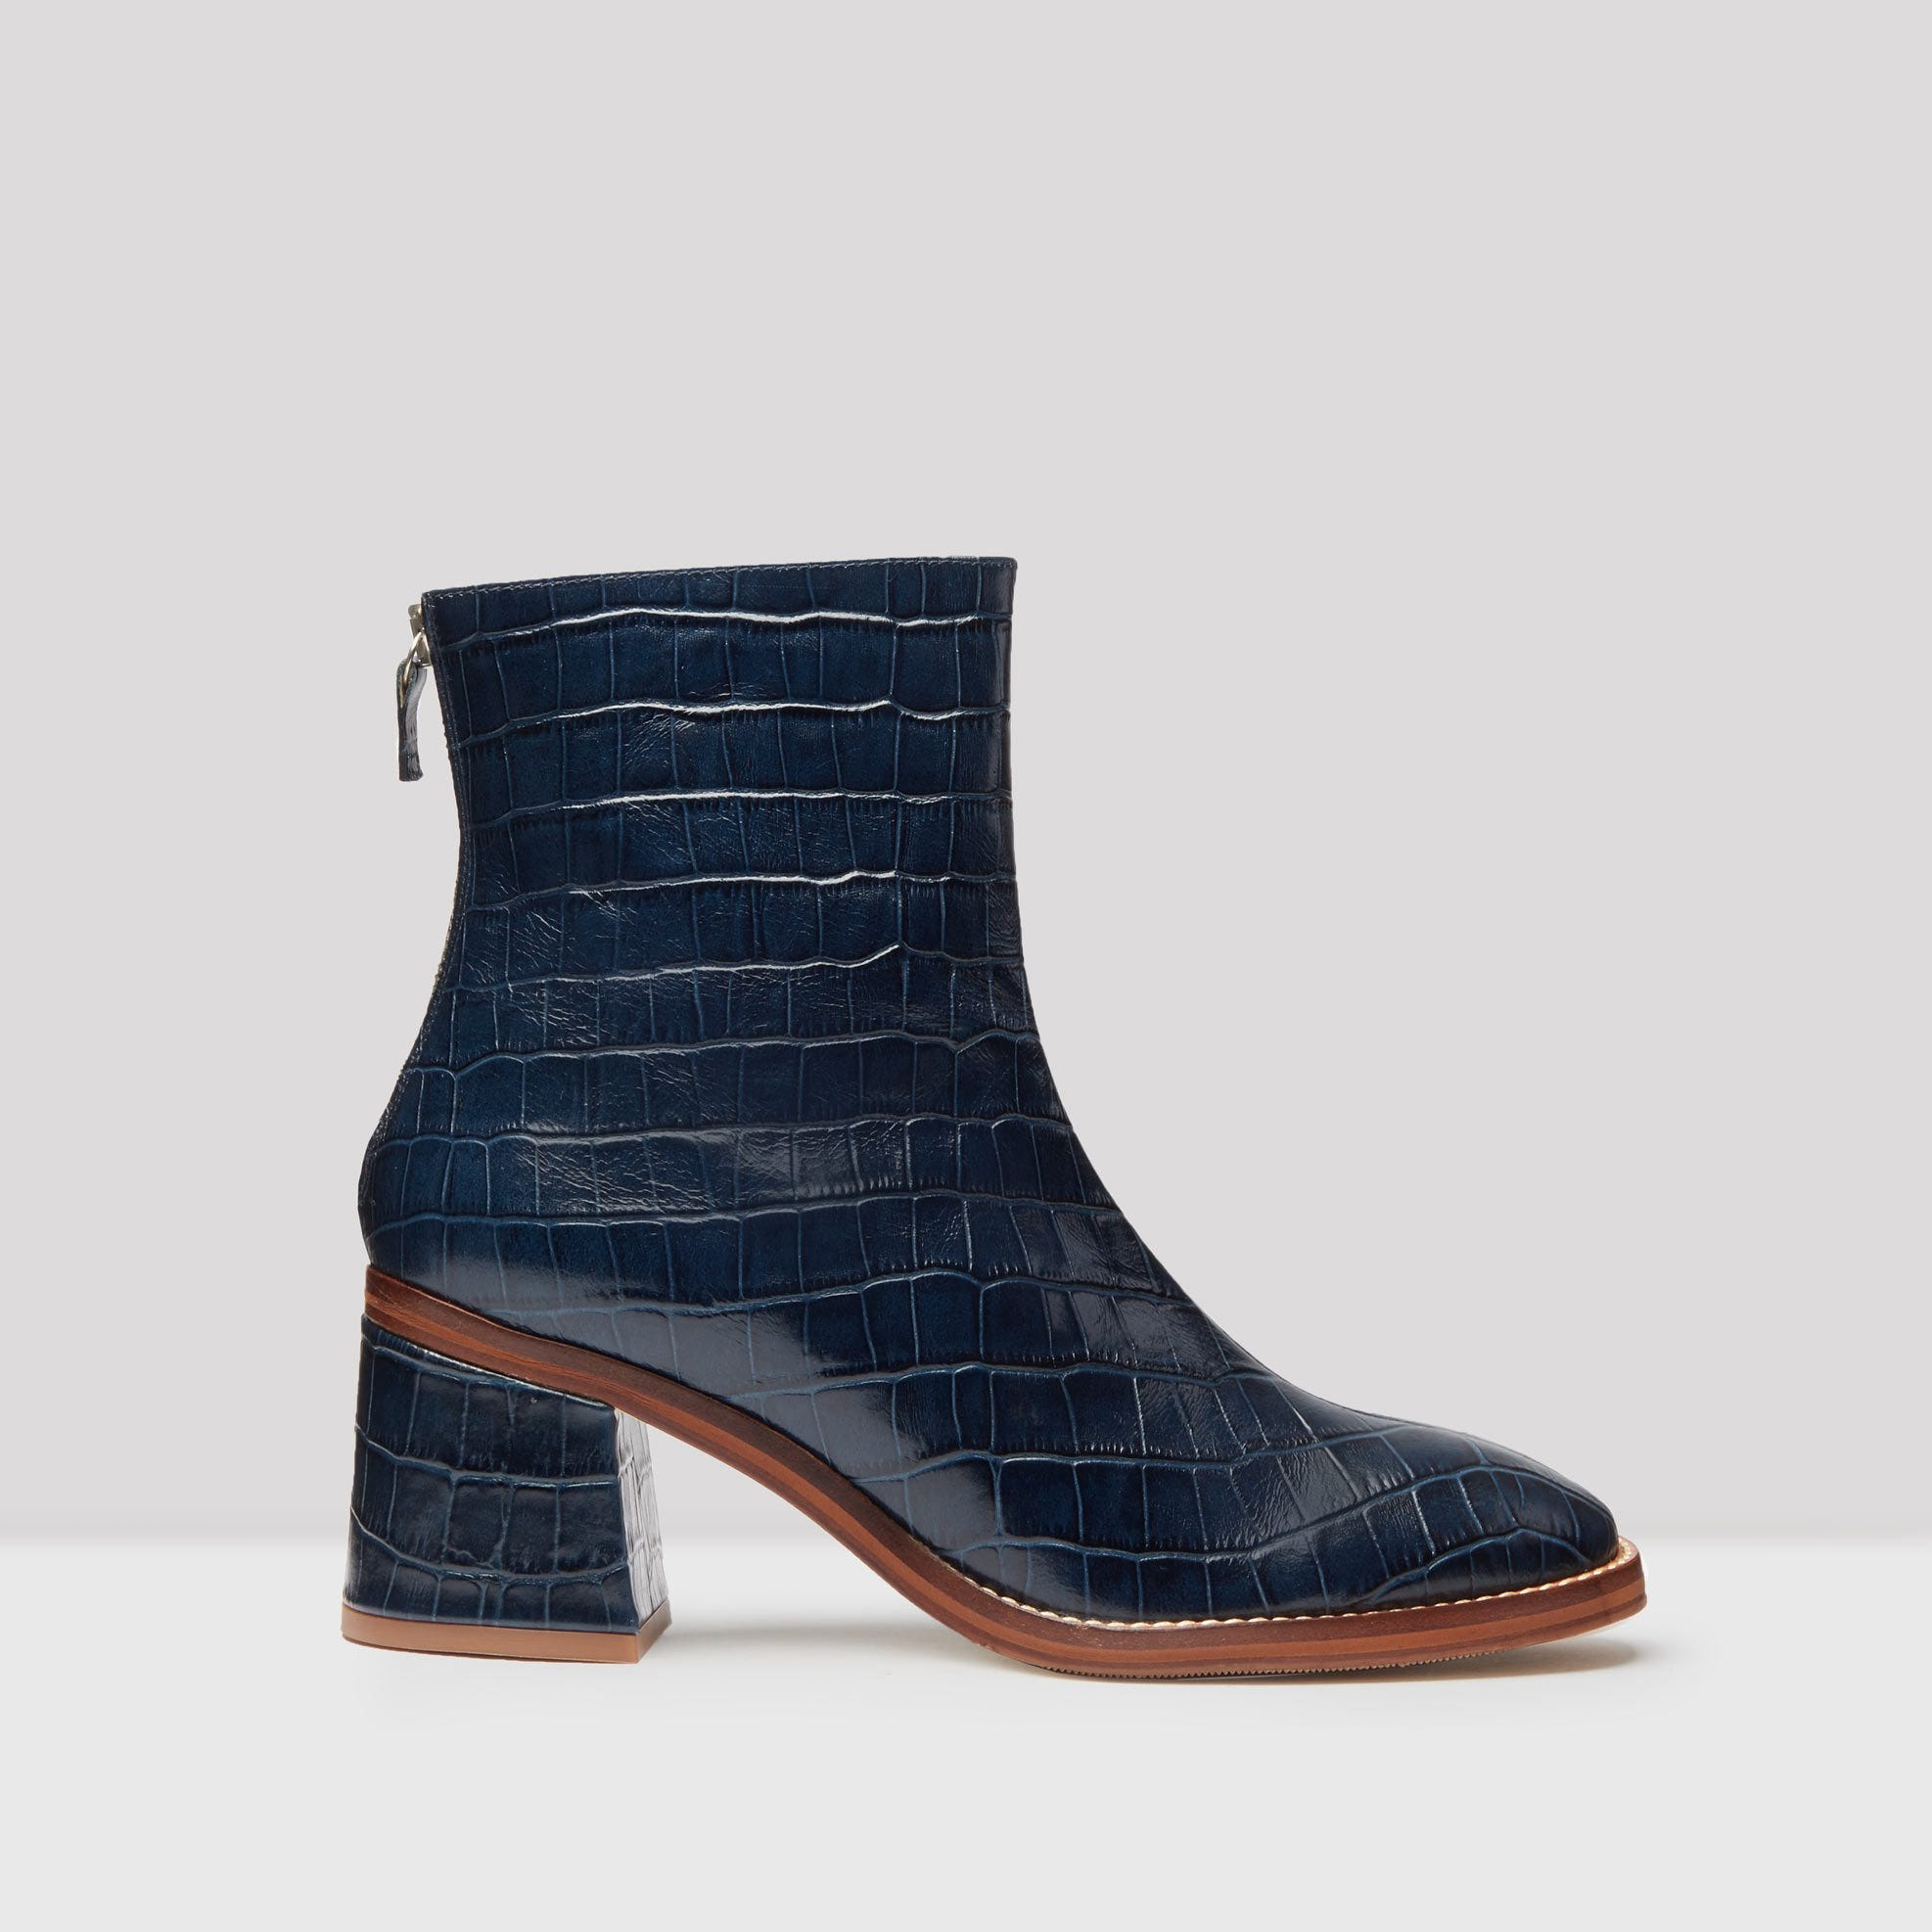 66391732979bc Cybil Navy Croc Glossed Leather Boots